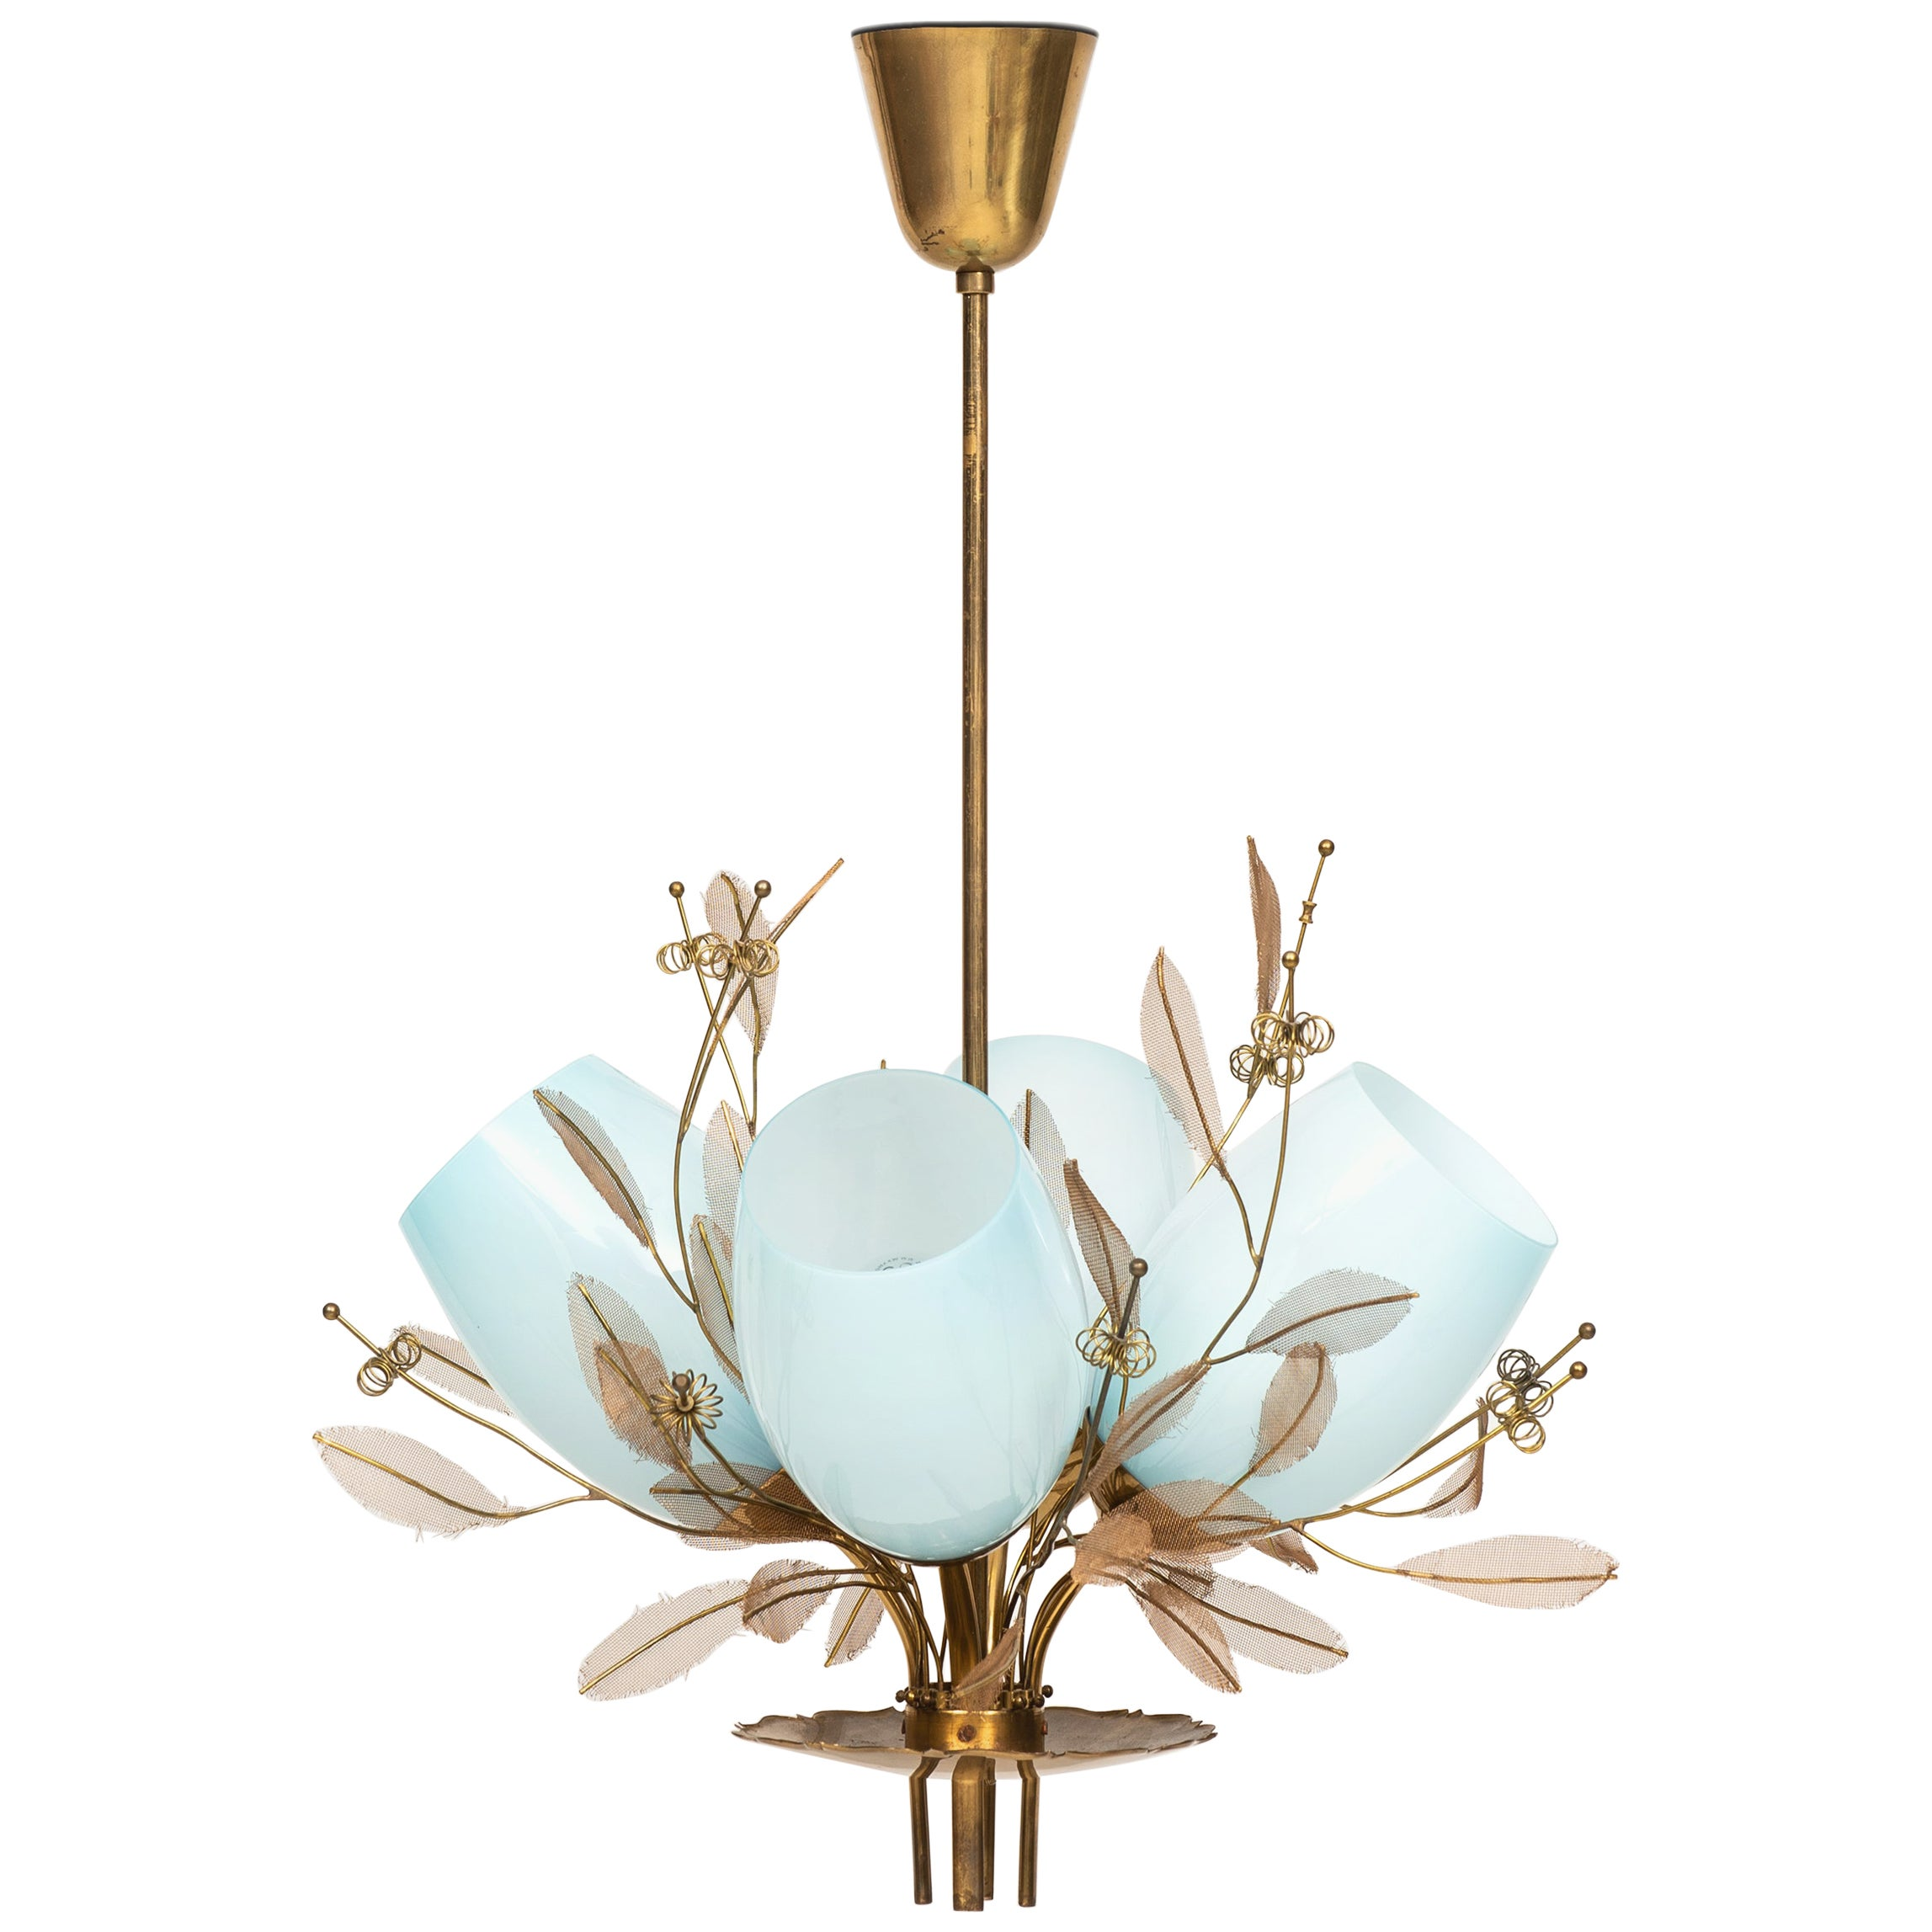 Paavo Tynell Ceiling Lamp Model 9029/4 Produced by Taito Oy in Finland